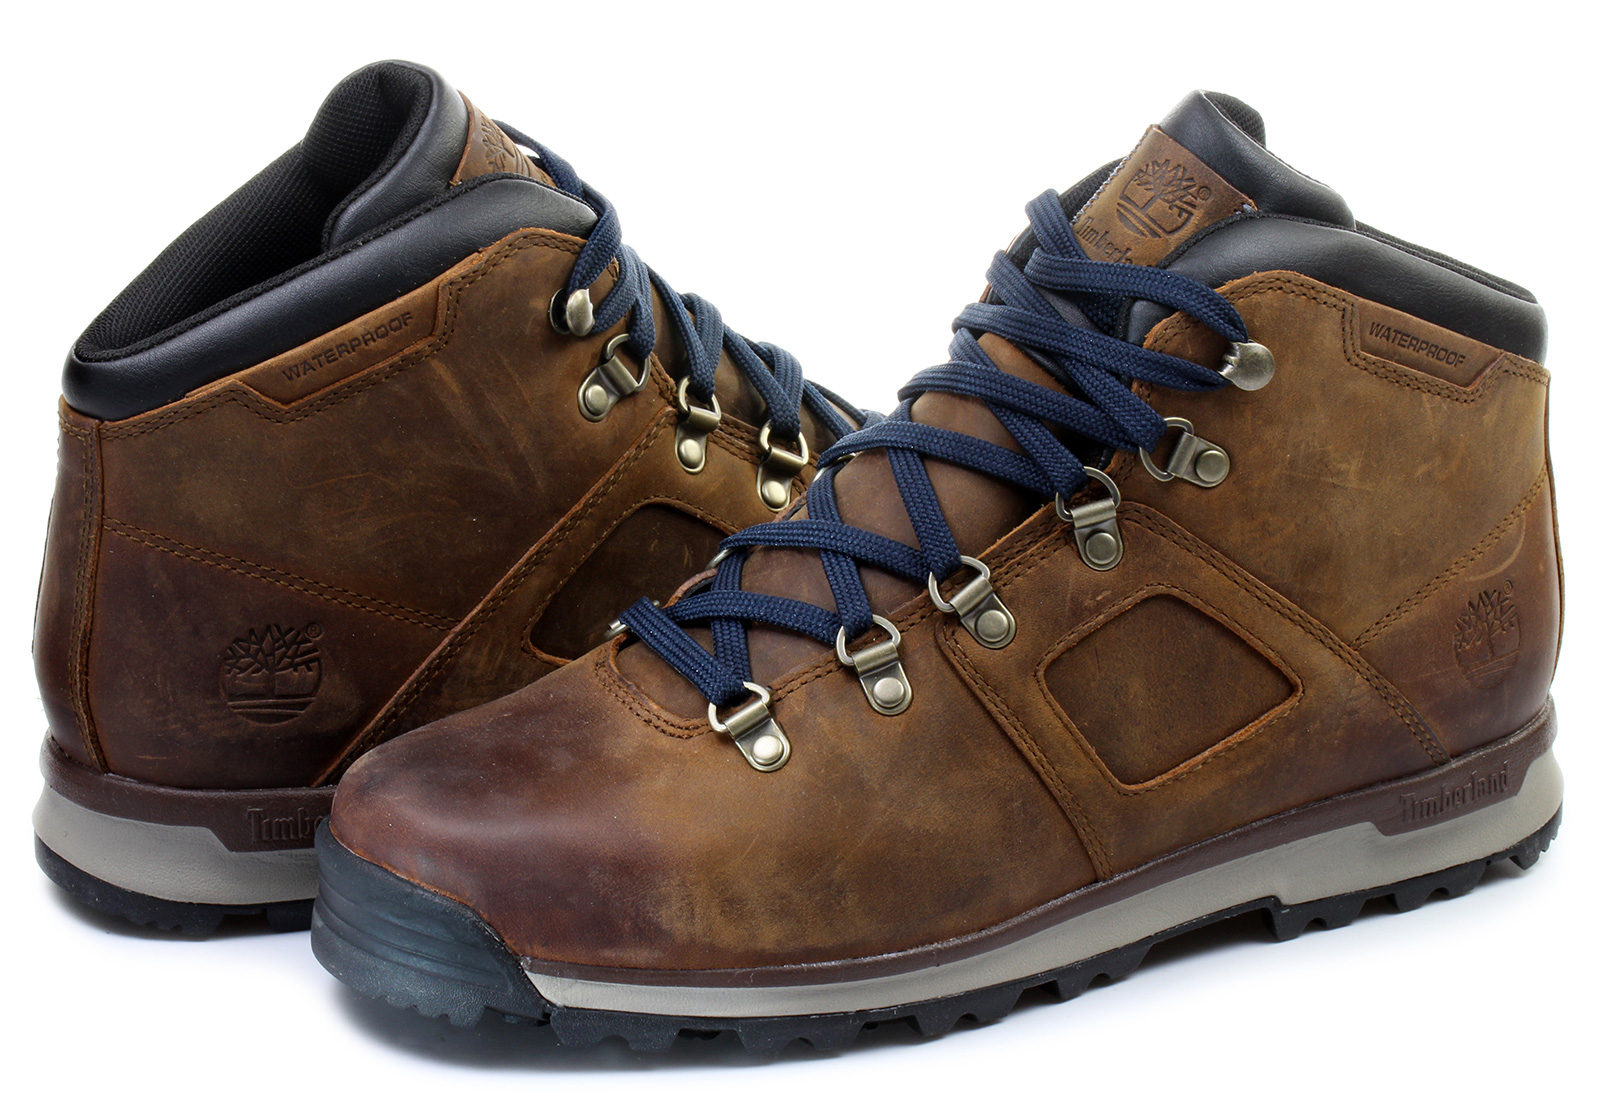 Timberland Boots Scramble Mid 2210r Brn Online Shop